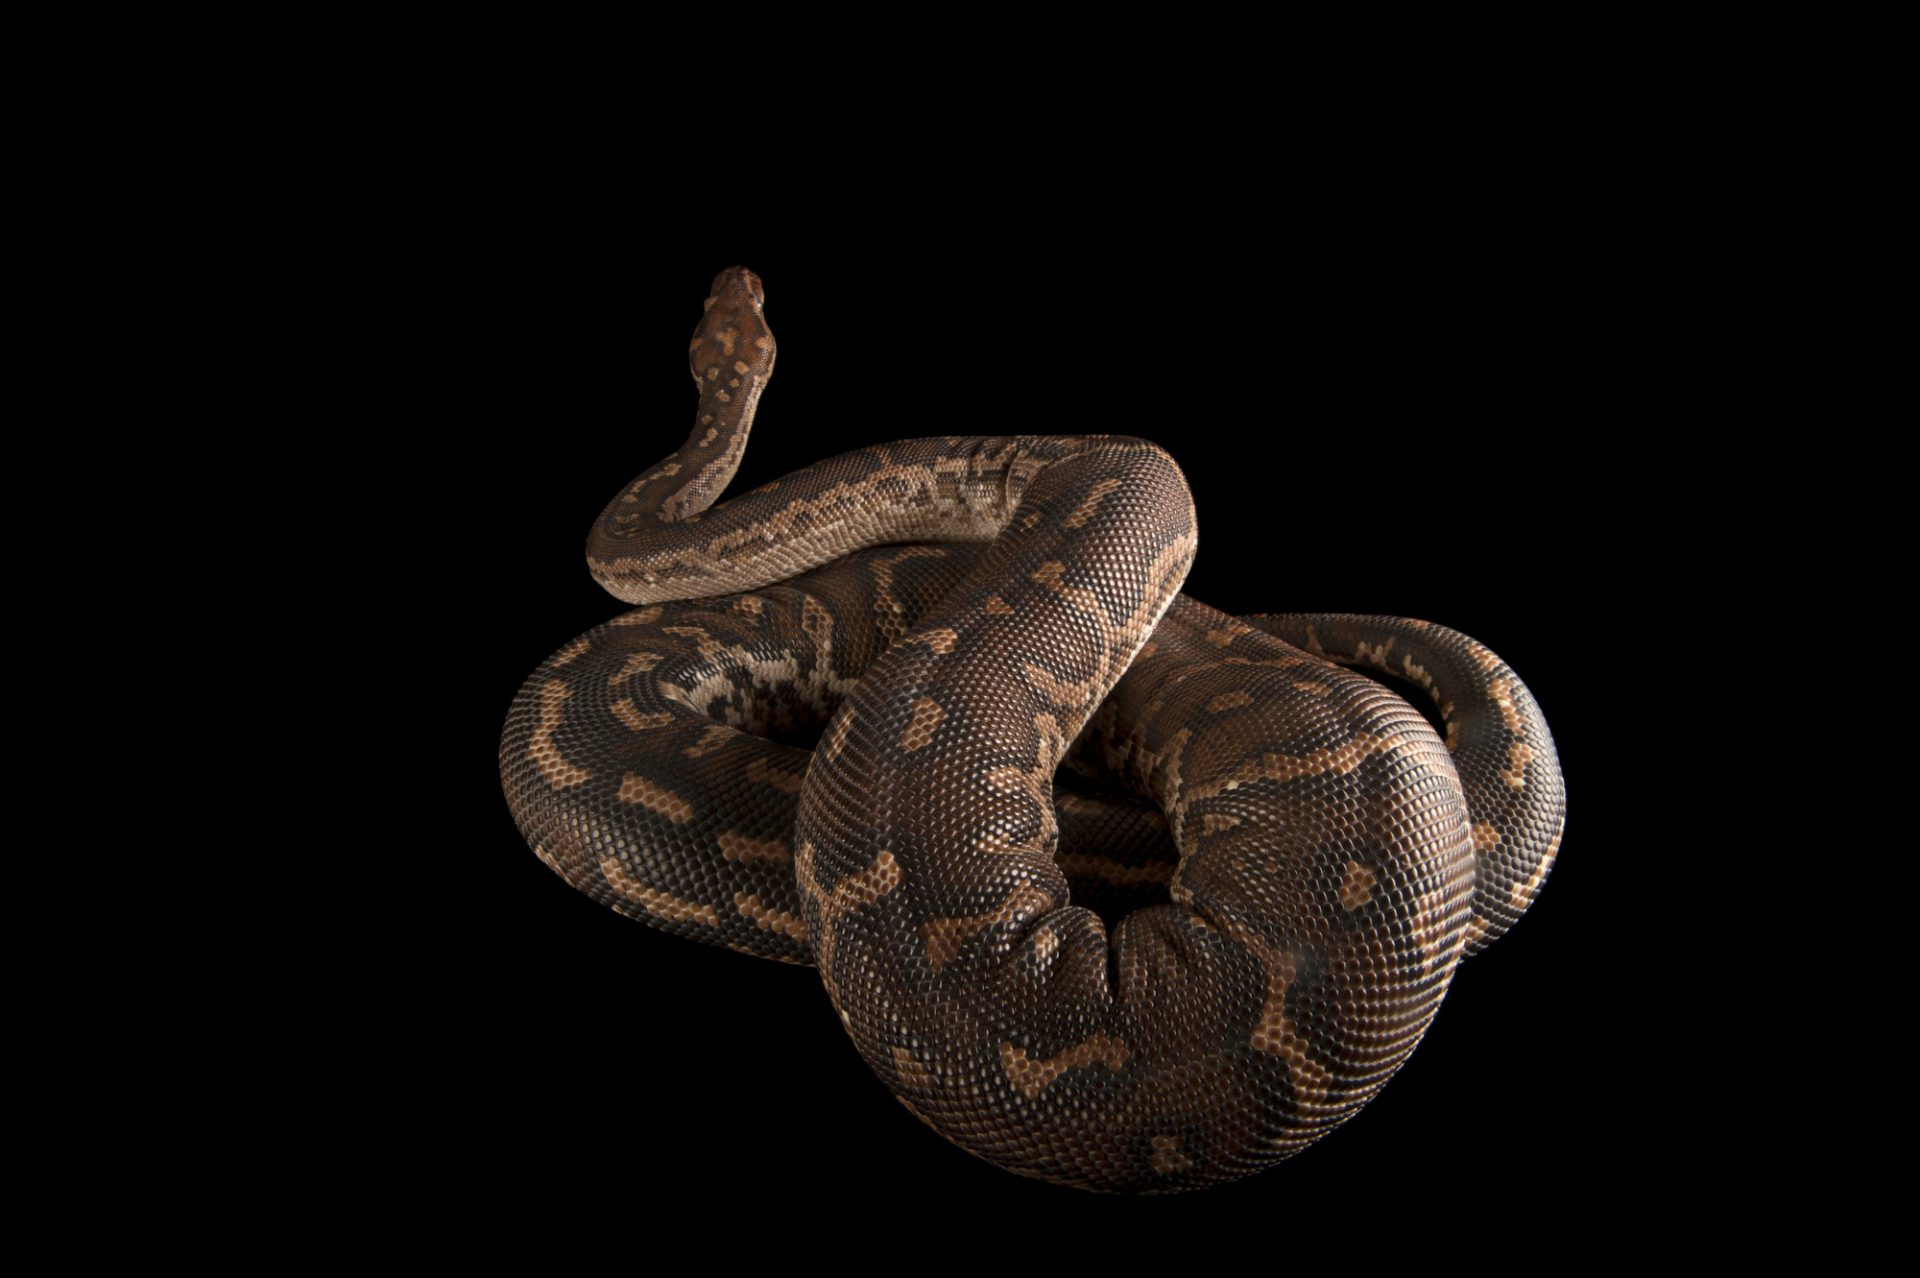 An Angolan python (Python anchietae) at the Omaha Zoo.